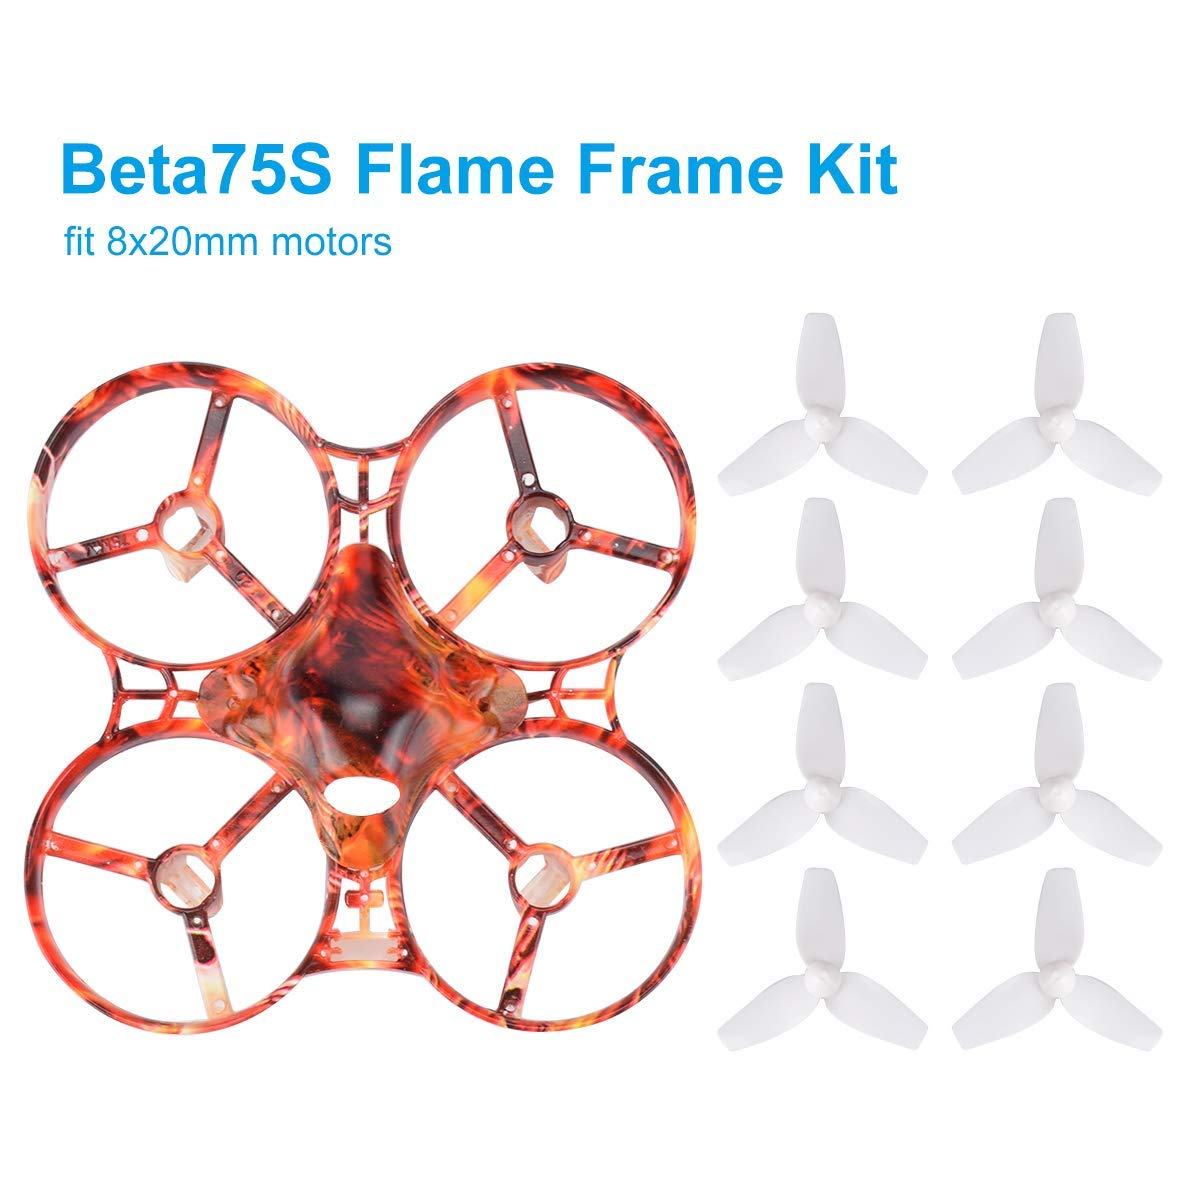 2pcs Beta75 Pro Micro Brushless Whoop Frame In Parts Accessories Happymodel Bwhoop65 65mm Tinywhoop Fpv Motor 0603 Betafpv Beta75s 75mm Kit Flame Freestyle With Canopy 40mm 3 Blade Props